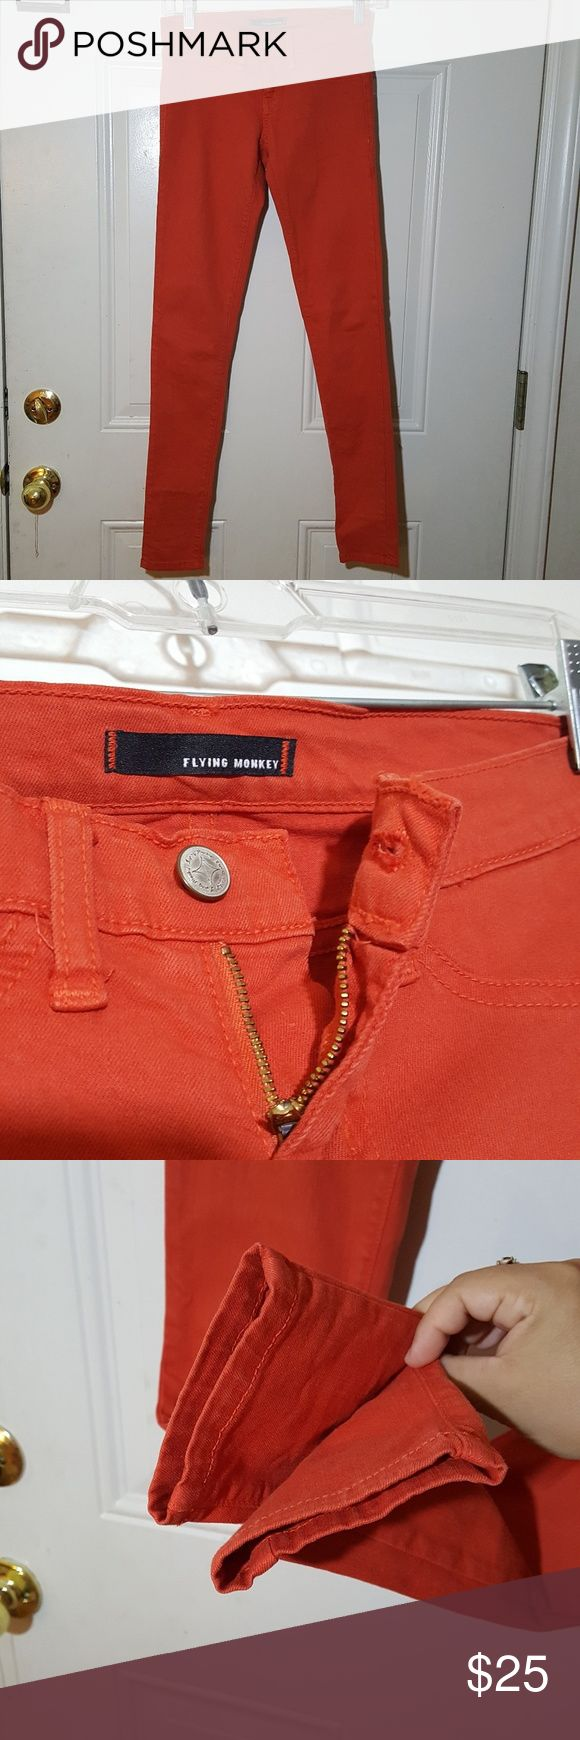 Flying Monkey Jeans Flying Monkey Jeans Size 0  Excellent condition. Flying Monkey  Jeans